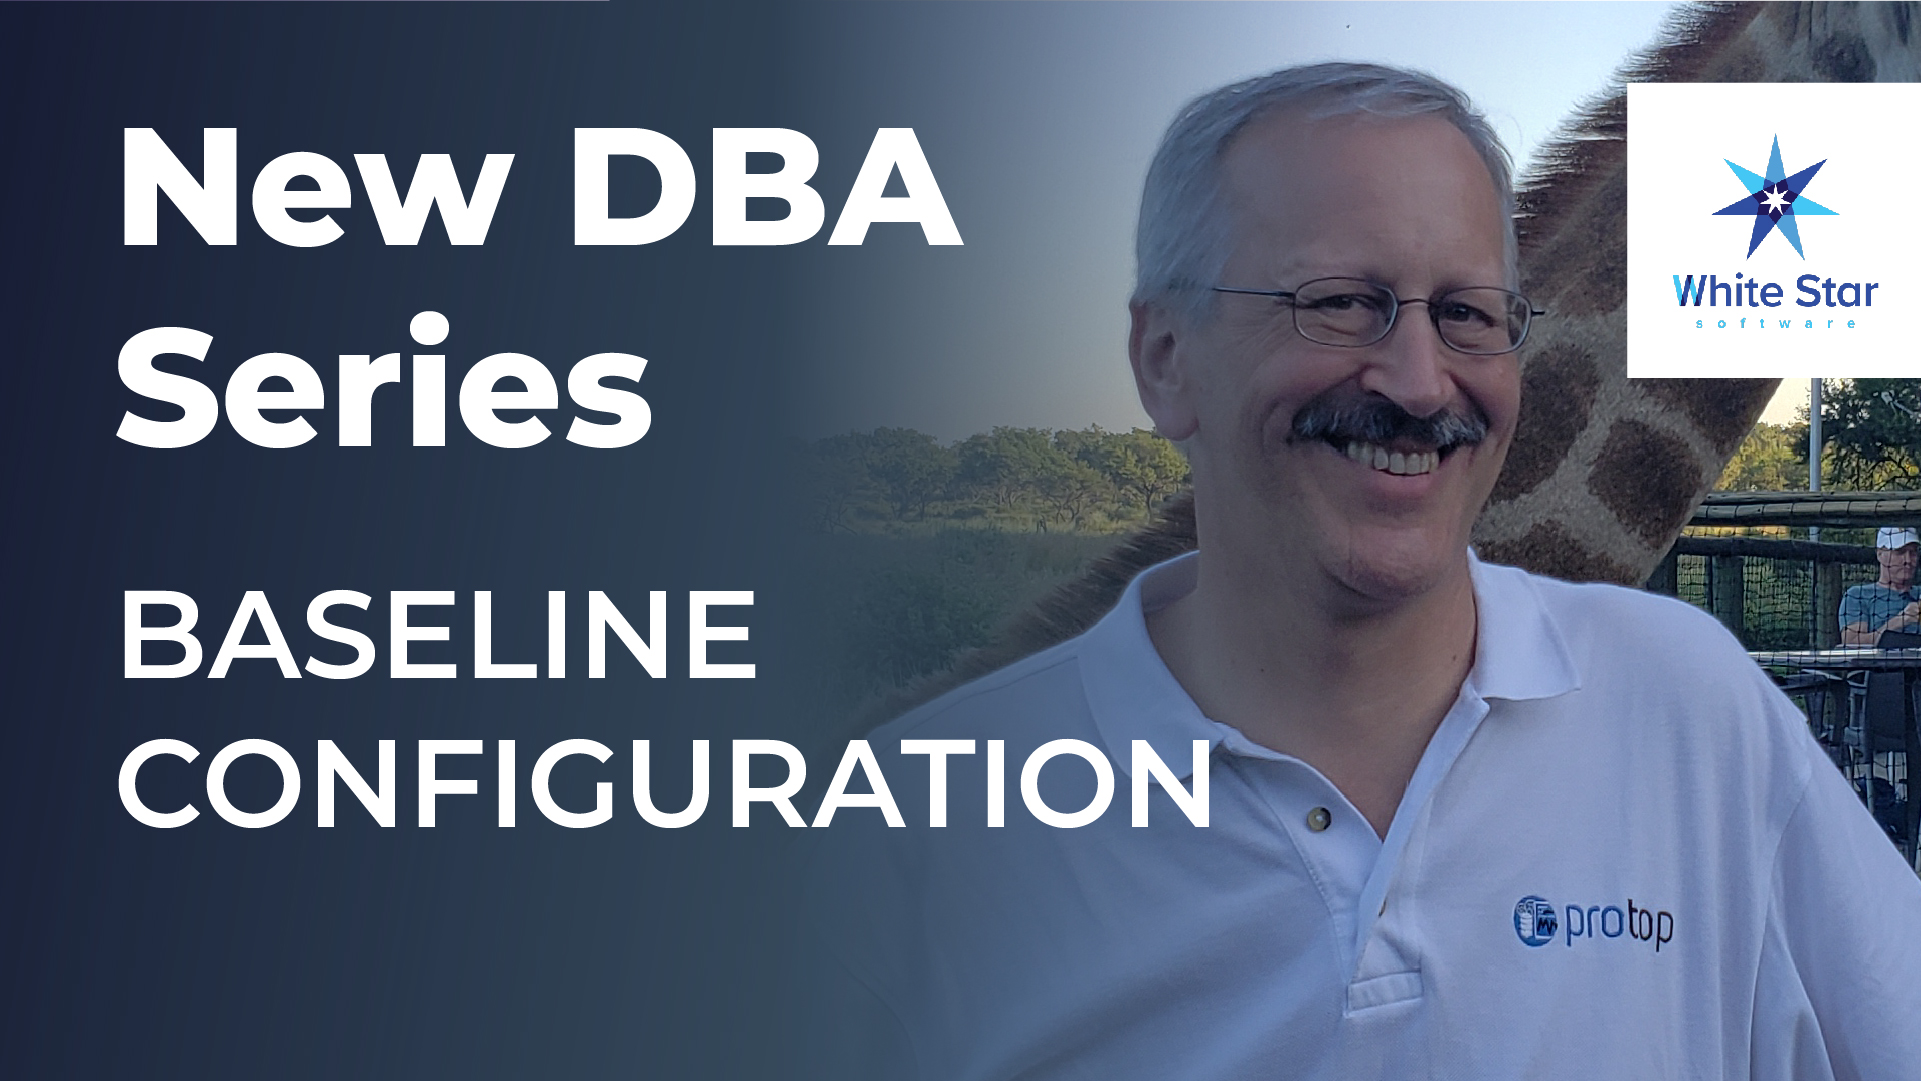 New DBA Series